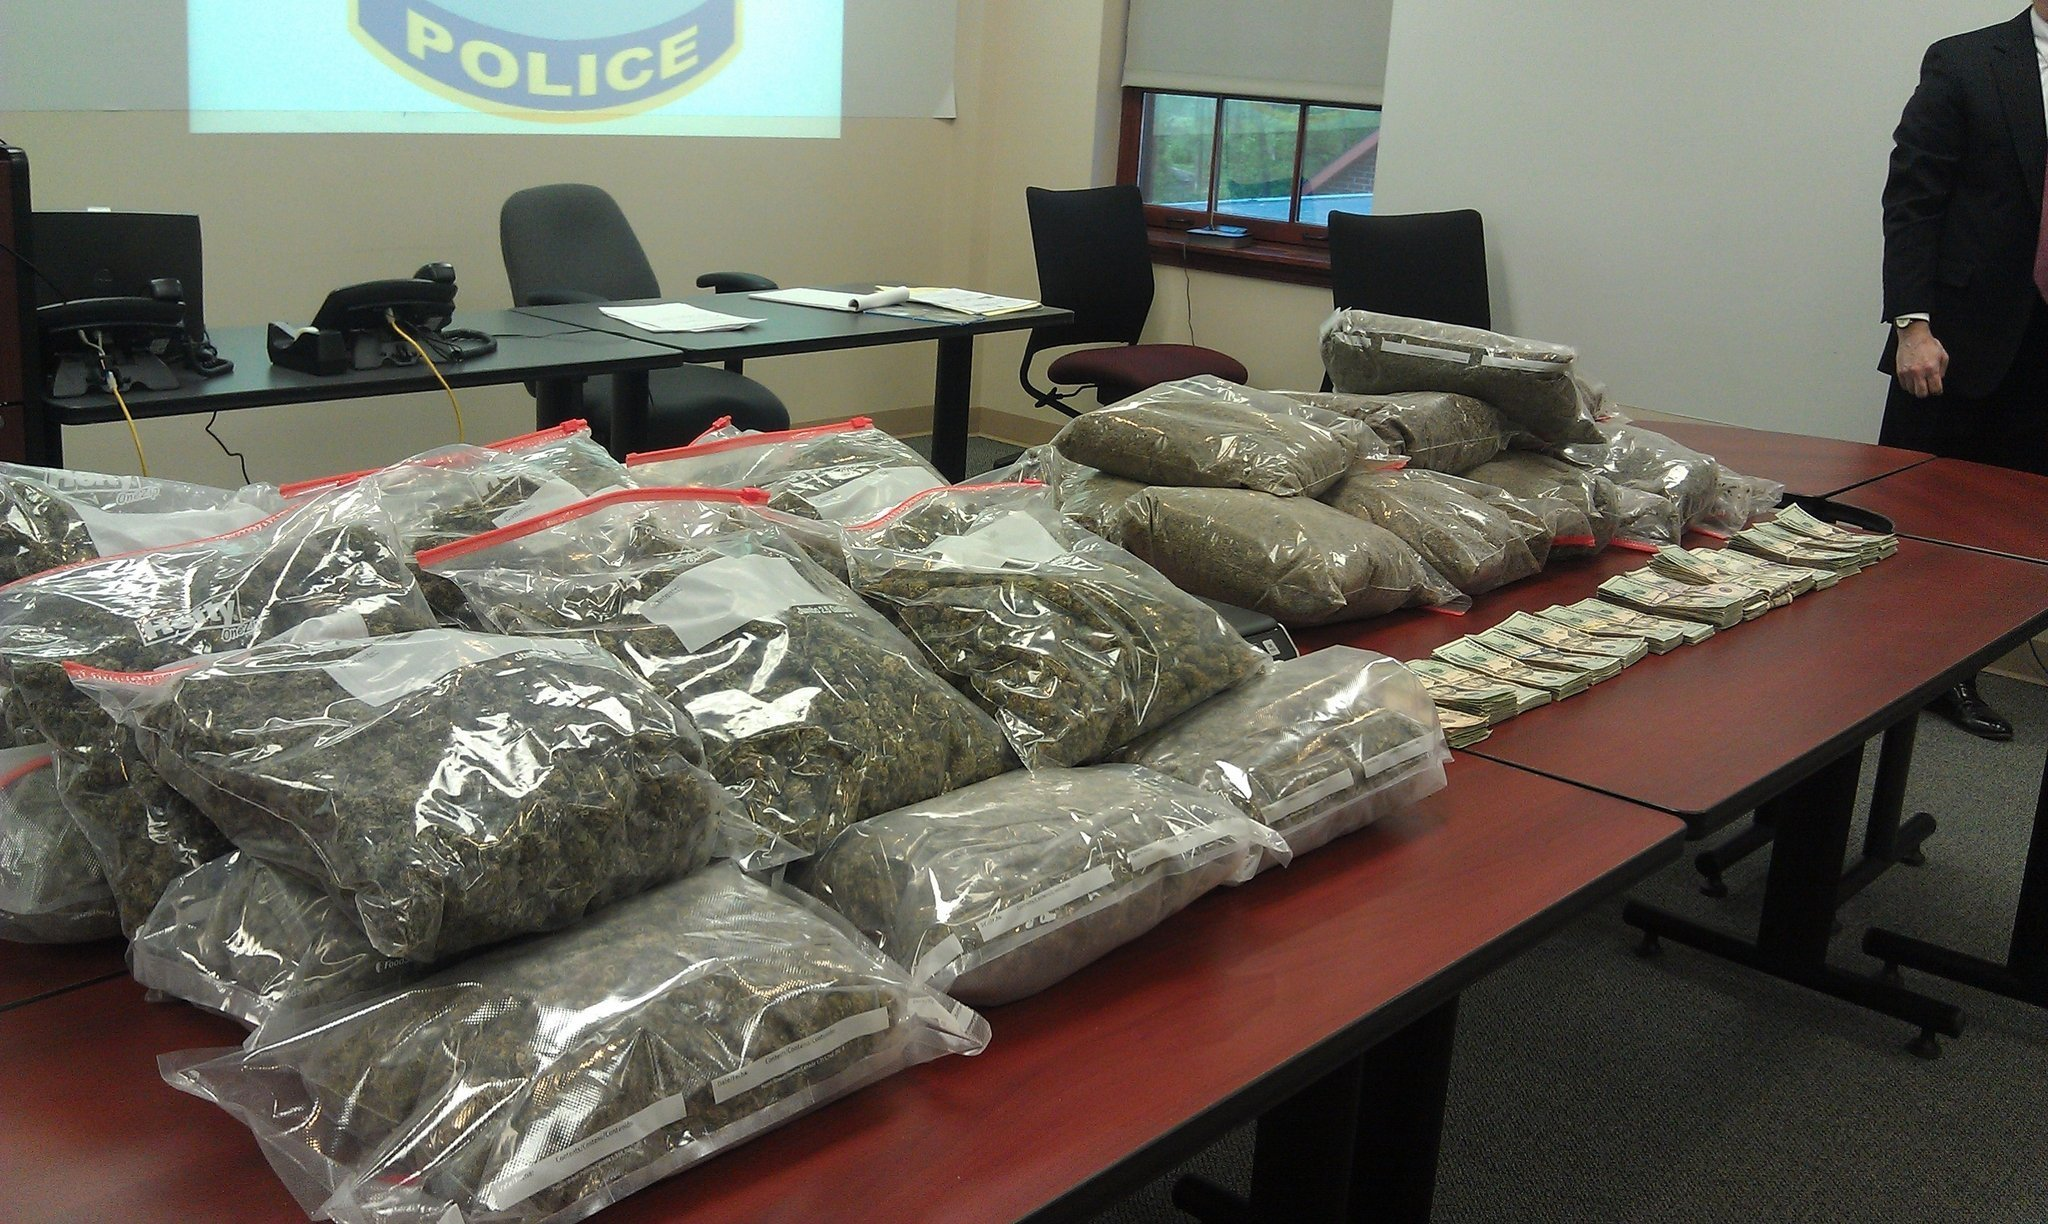 https://i1.wp.com/media.pennlive.com/midstate_impact/photo/cumberland-county-pot-bust-45bb1c03e7c542bc.jpg